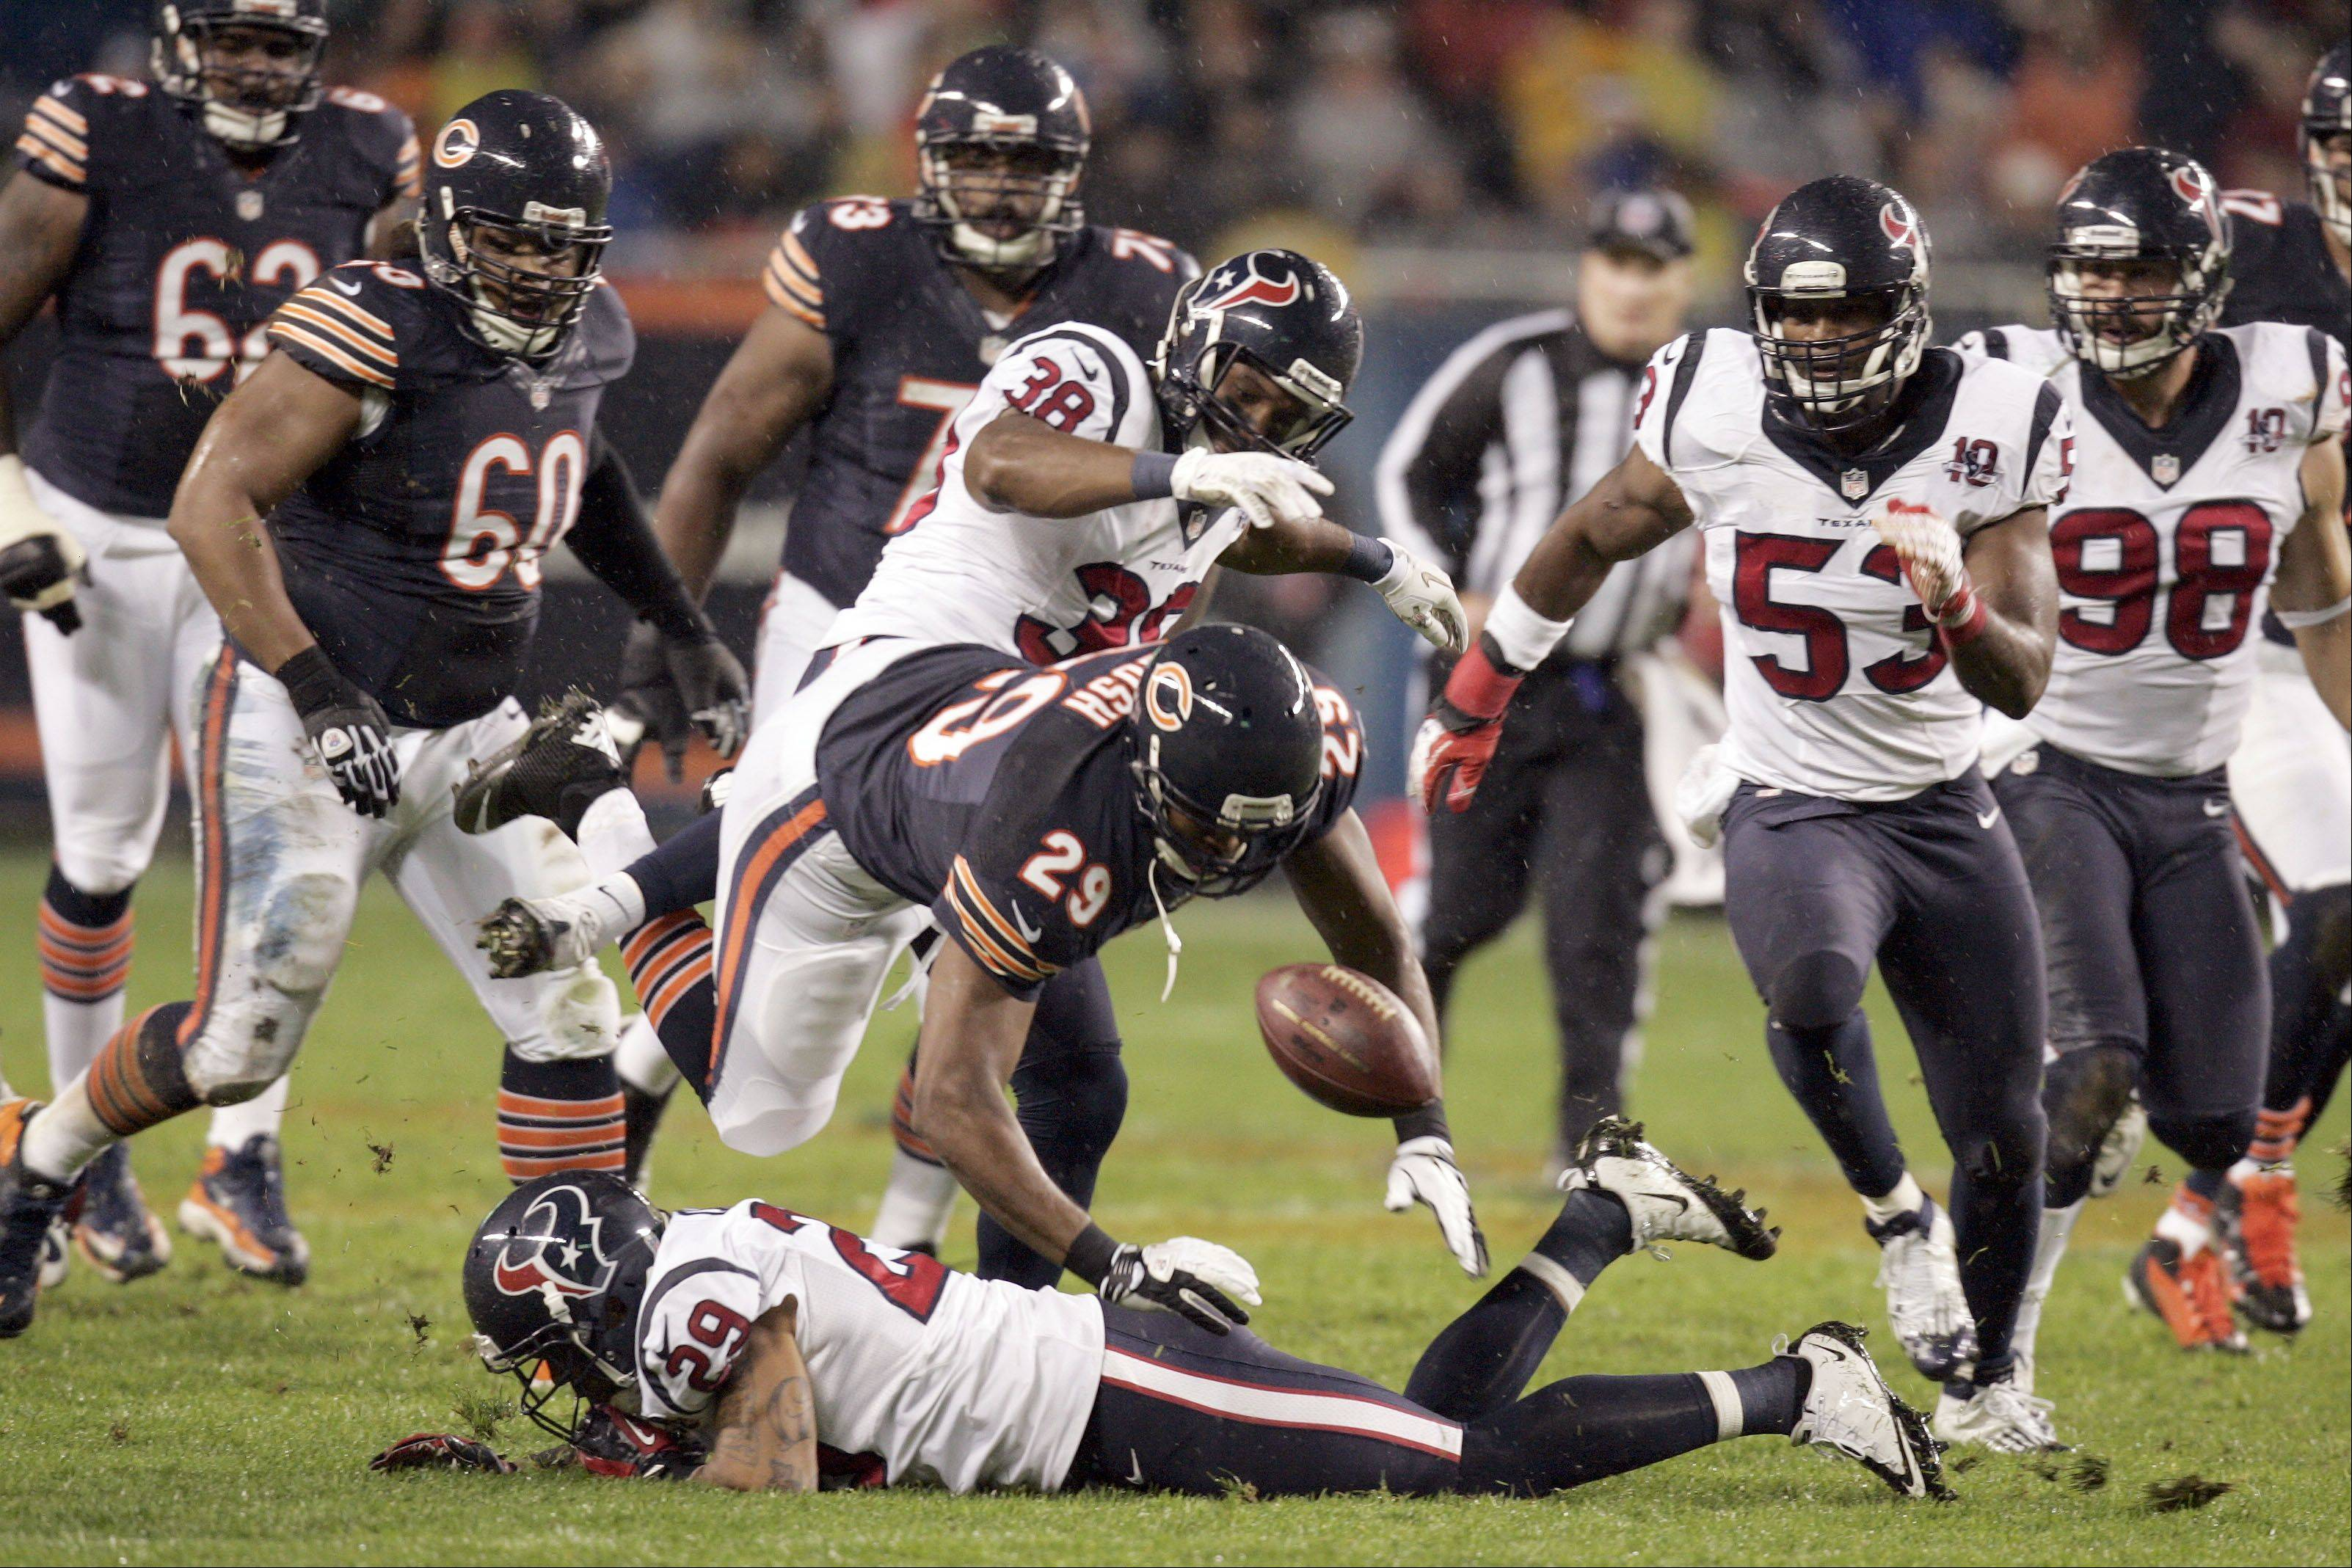 Chicago Bears running back Michael Bush (29) loses the ball during the game.